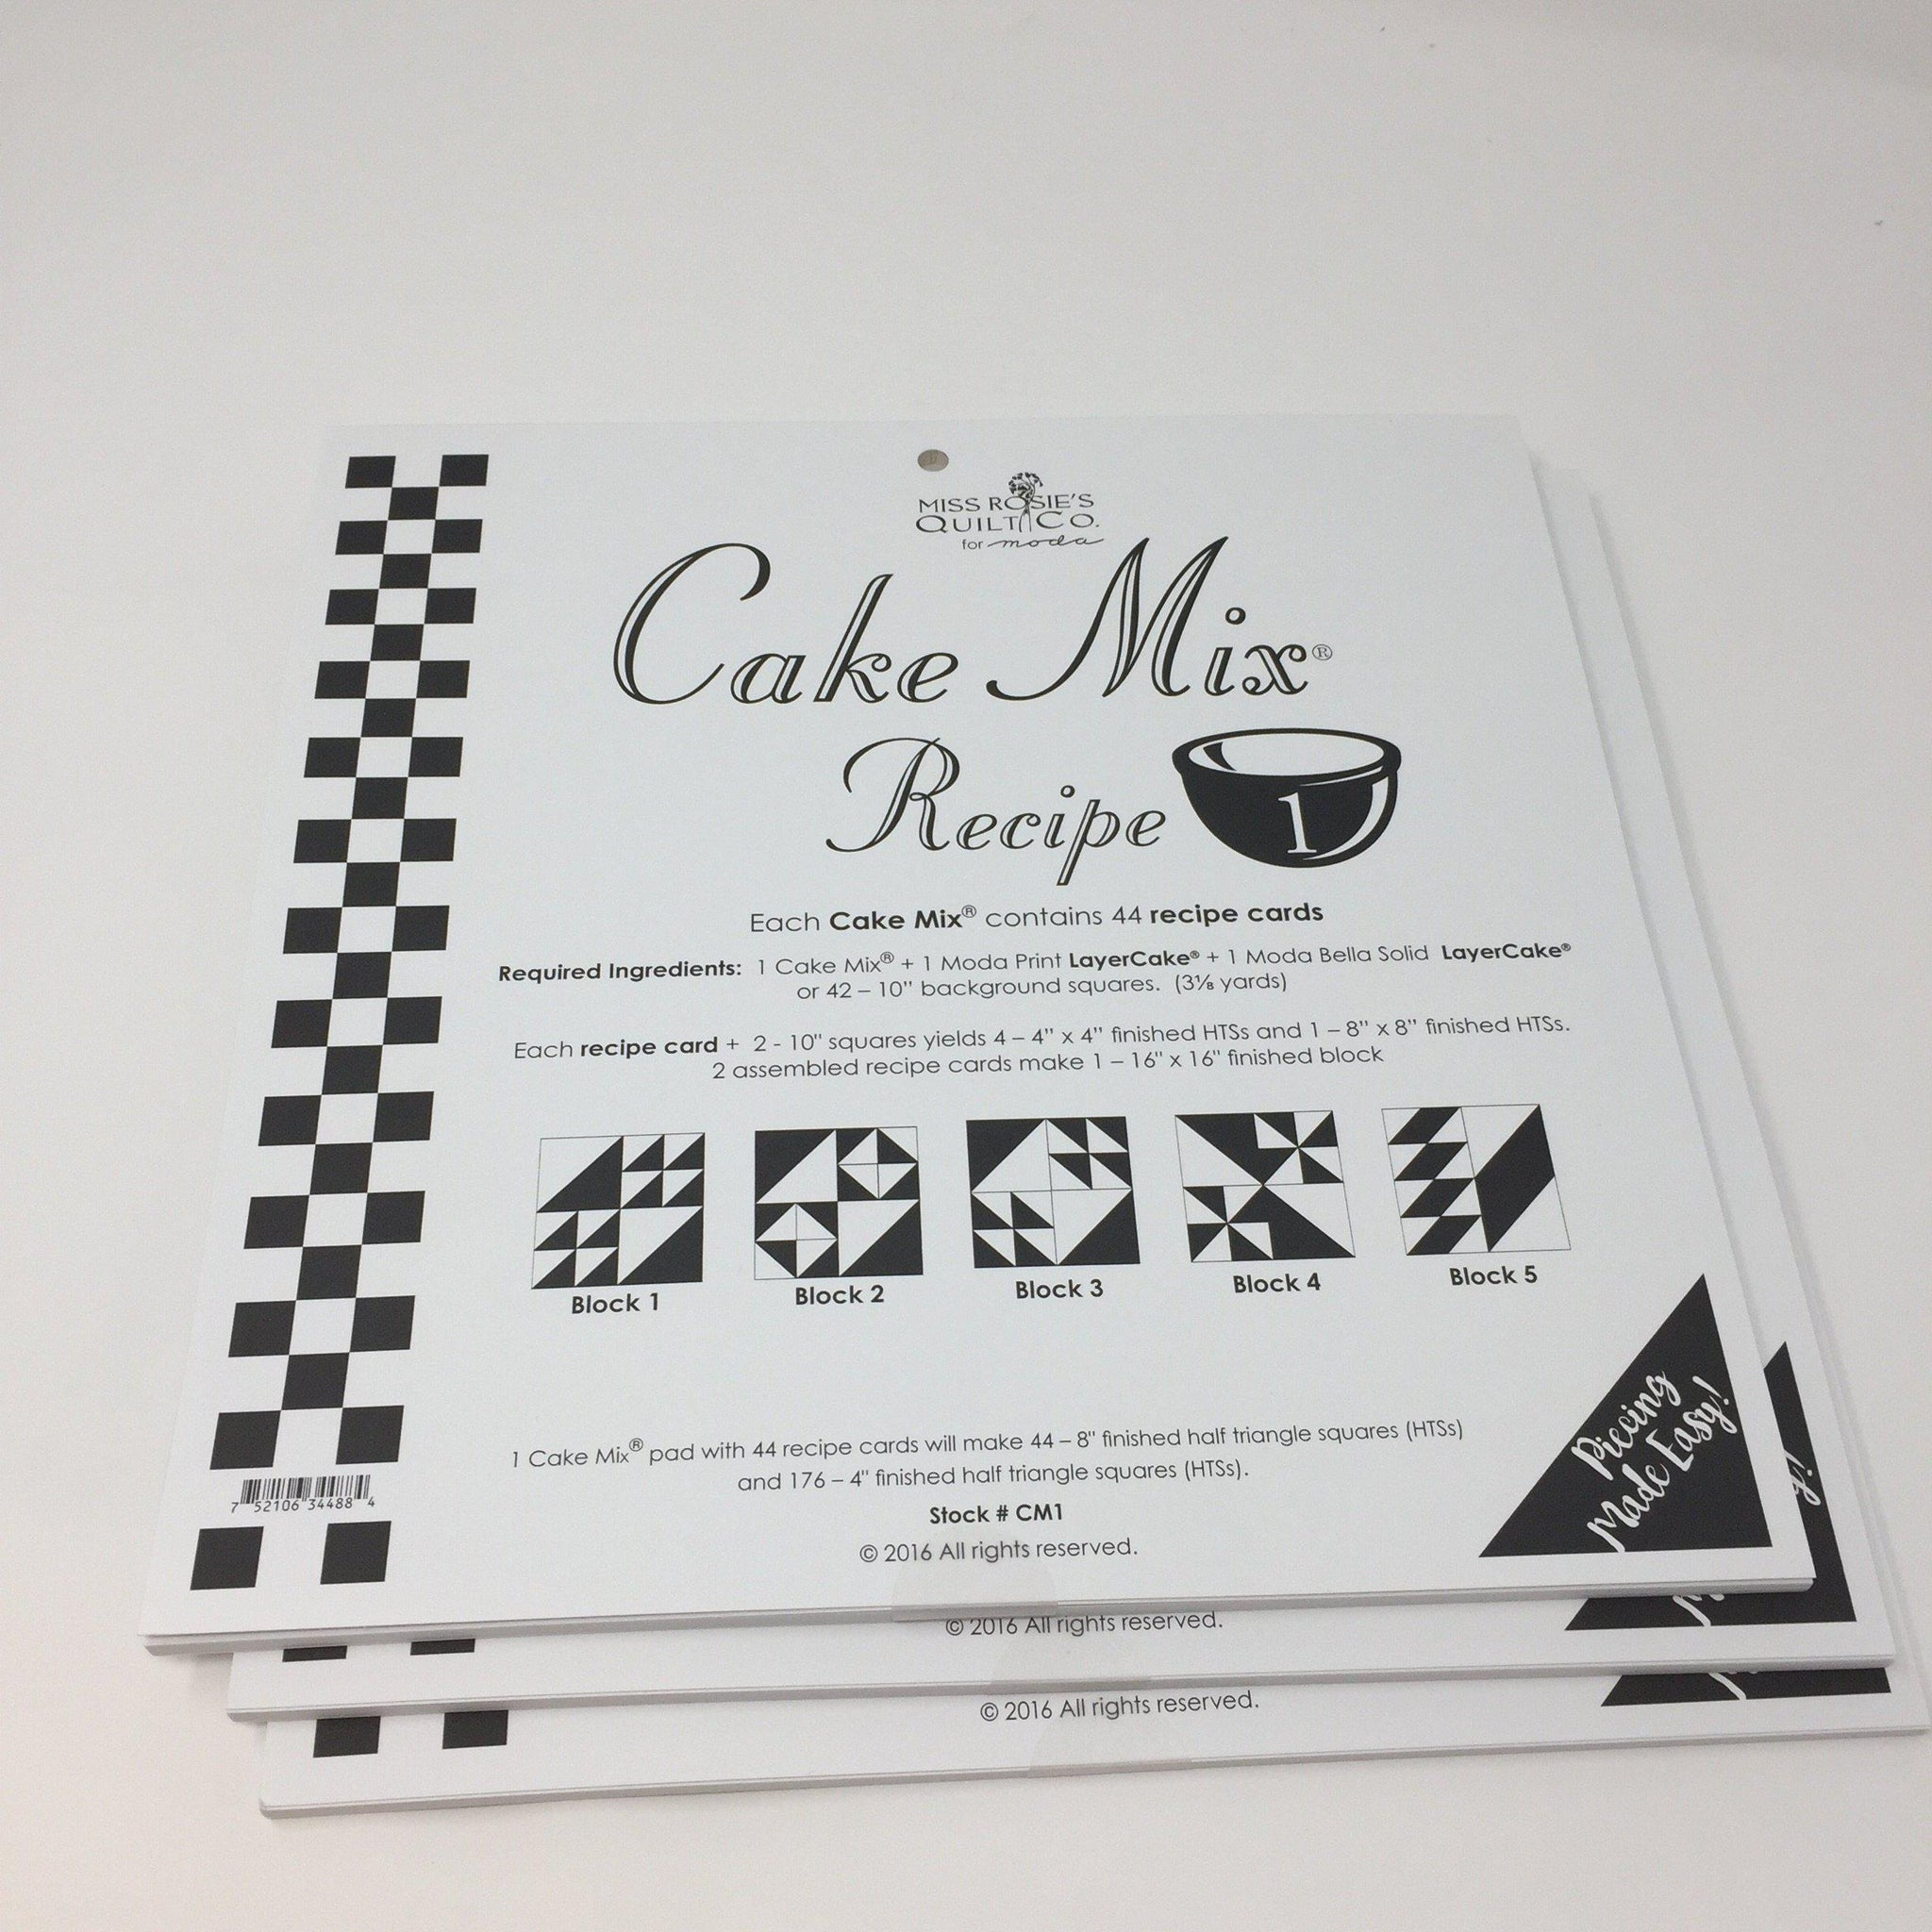 Cake Mix Recipe 1 by Moda- Each Recipe contains 44 Papers to make 88 Quilt Blocks Moda Cake Mix Recipe - Fabric Mouse